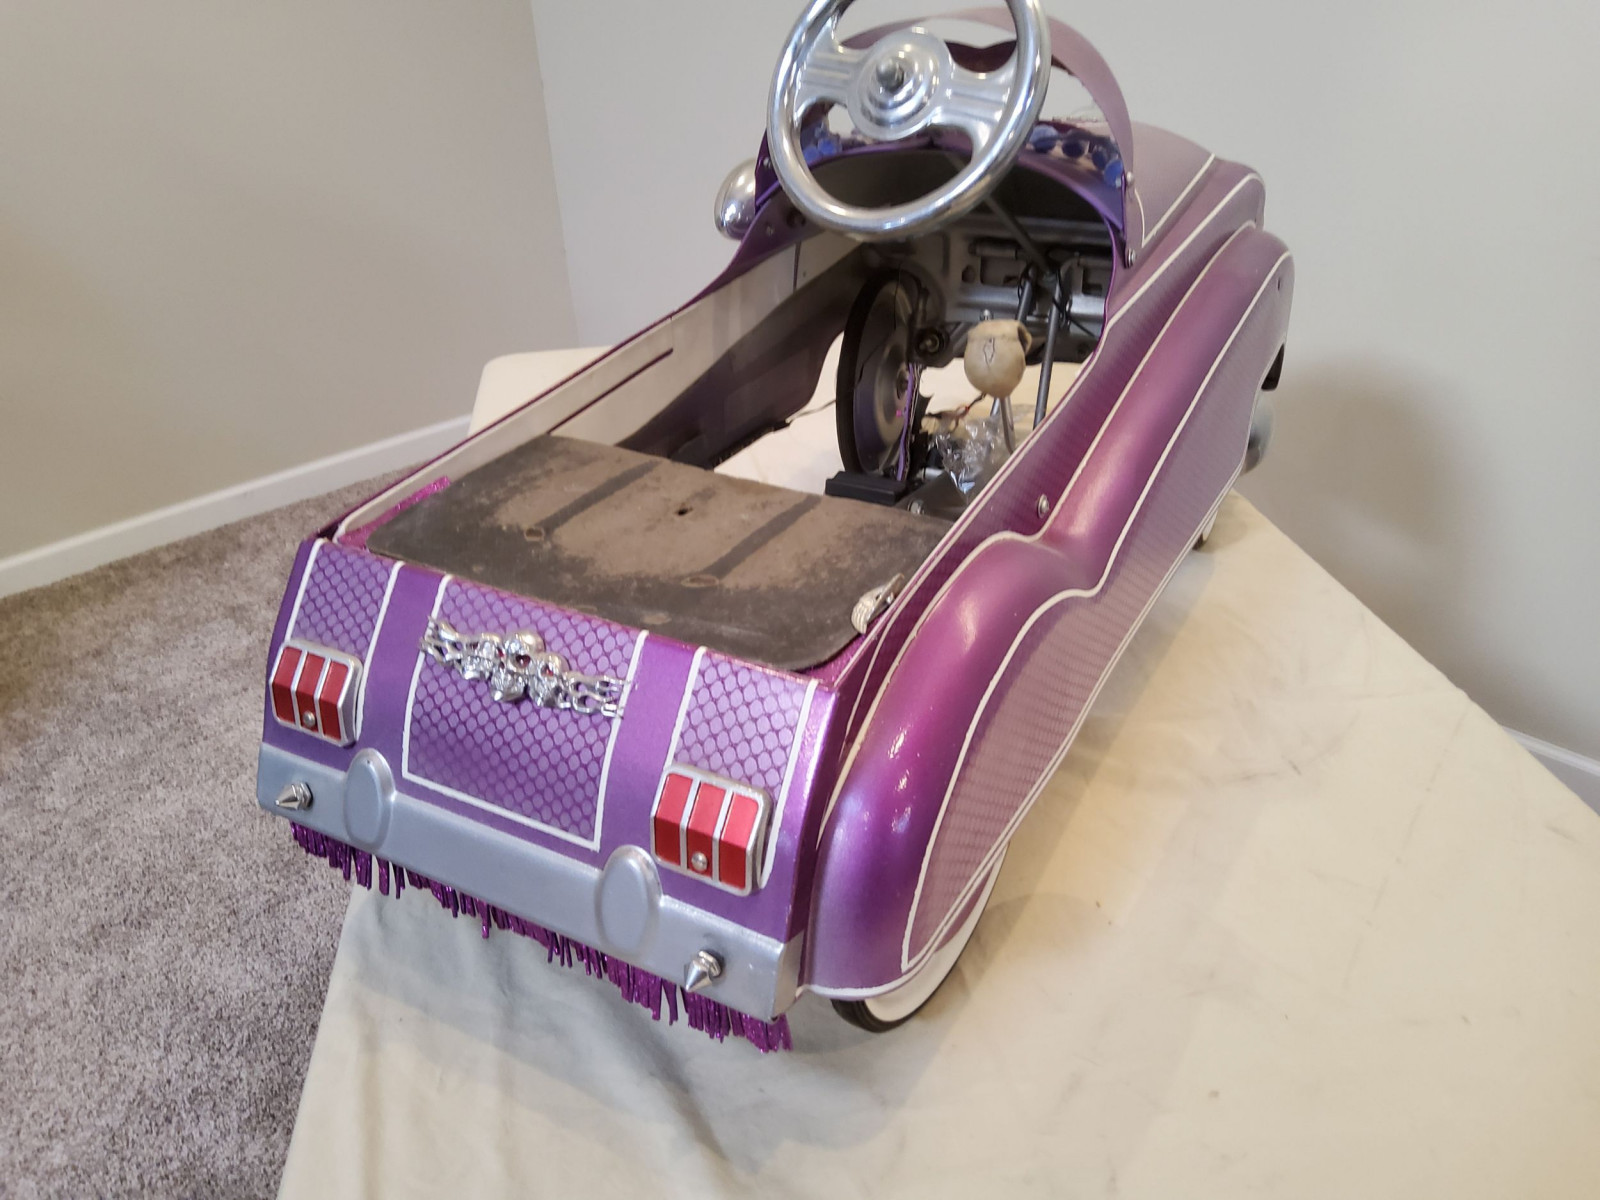 1959 Murray Dipside Custom Pedal Car - Image 7